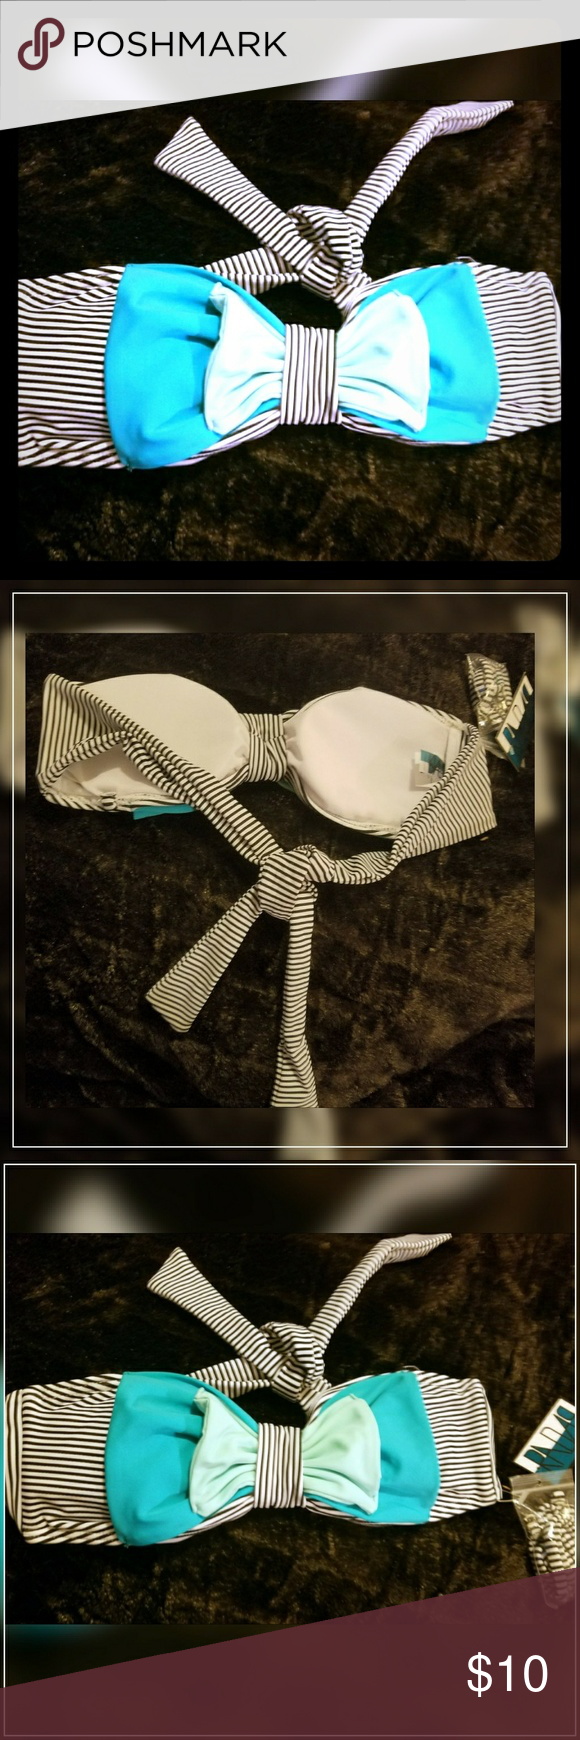 Radar Medium Striped Bikini Top w/Bow NWT Radar navy and white striped bikini top with 2 shades of green bow on the front.  Size medium.  This is definitely dark navy blue and white stripes.   Top only.   Really cute top!!  Removable bra pads... no wire.  There is a detachable strap that has never been opened.  Price tag not there but plastic thing that holds price tag is.  New, never worn.  Easy mix and match.   Originally $36. Smoke free. Don't forget to bundle to save an extra 15% off…